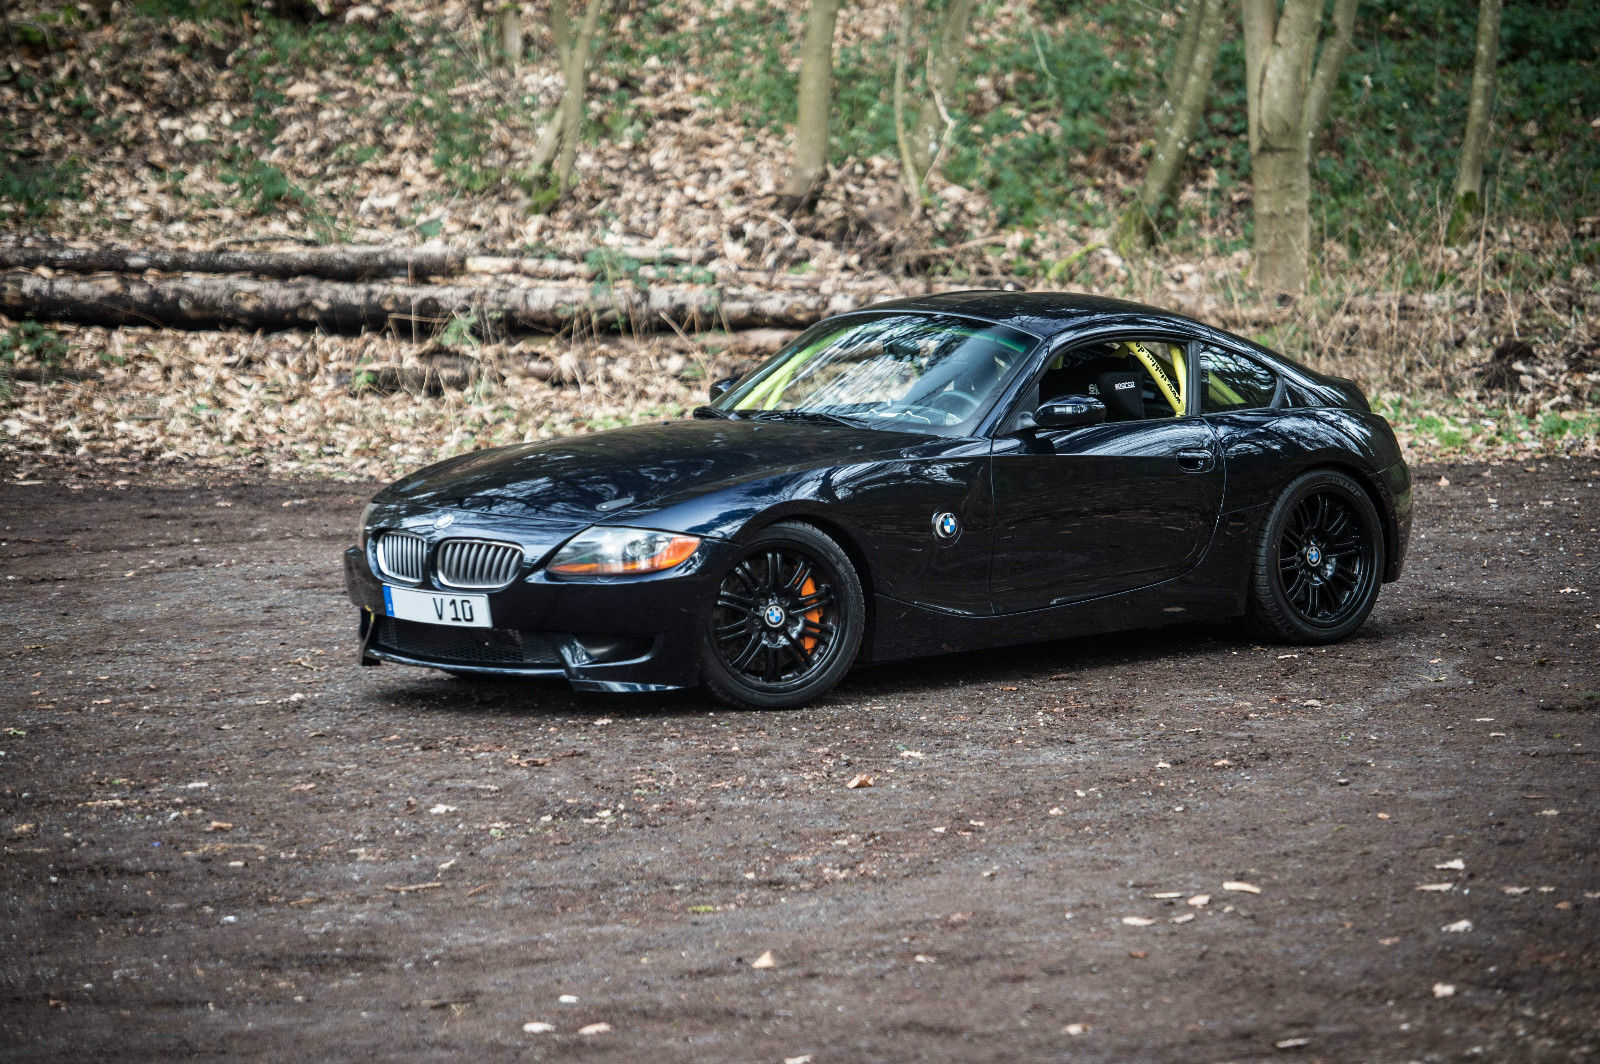 BMW Z4 with a Dodge SRT-10 Viper V10